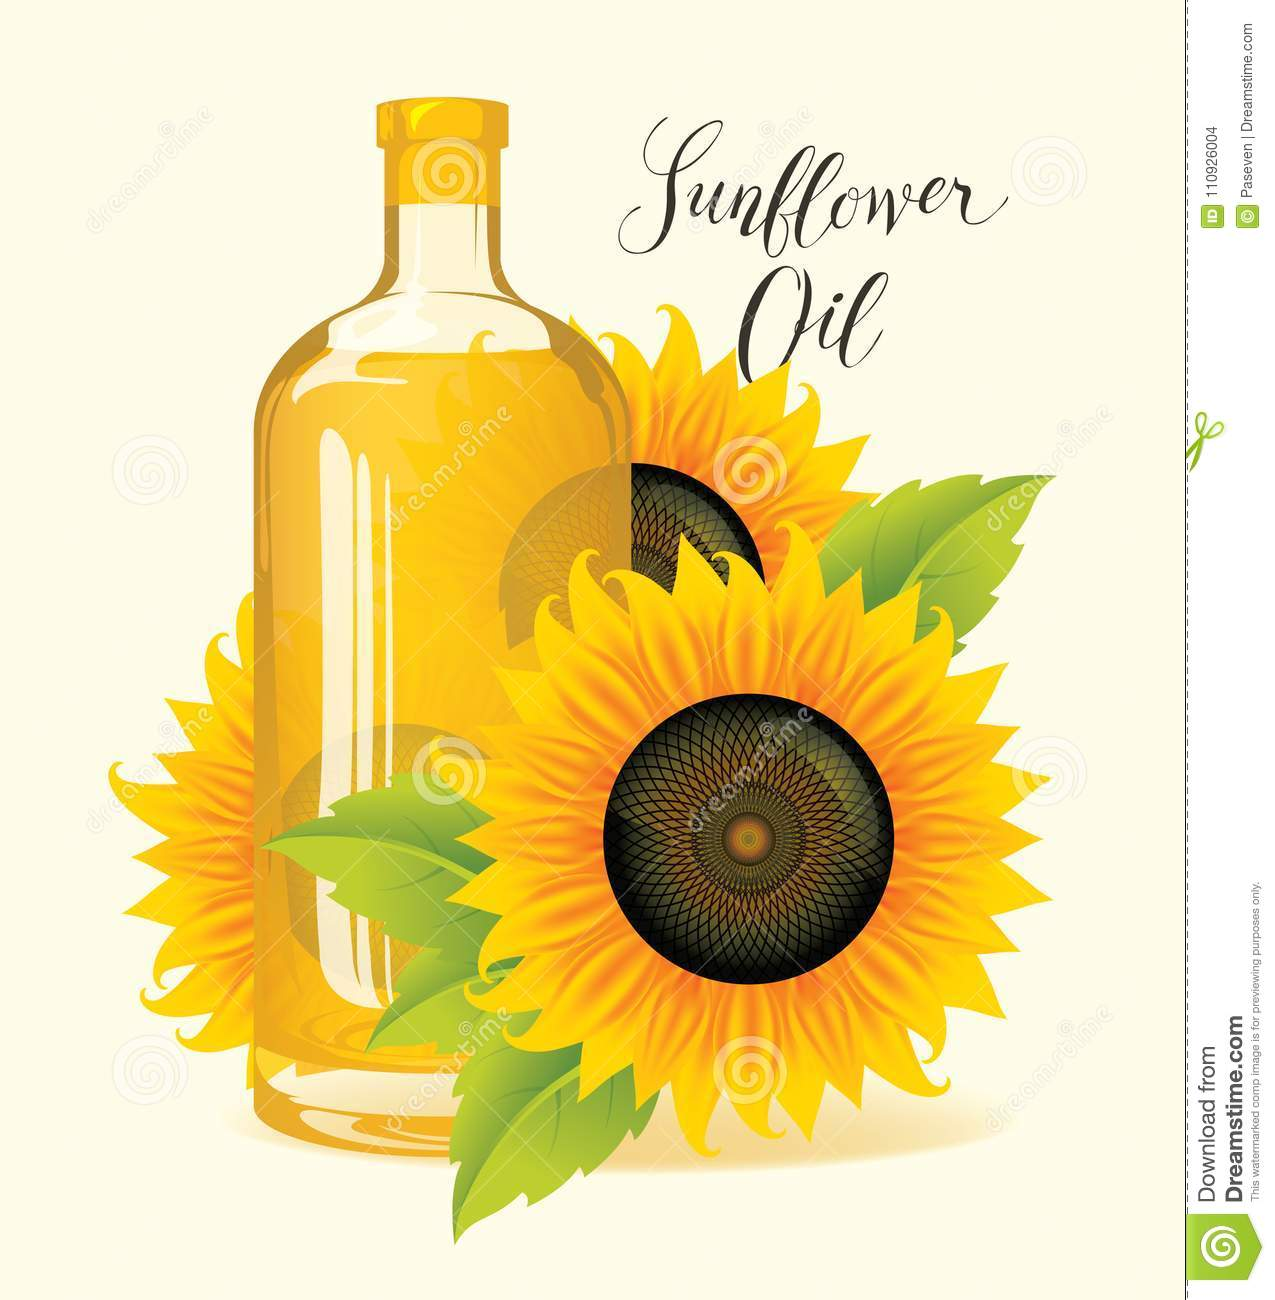 Bottle of sunflower oil with sunflowers and leaves